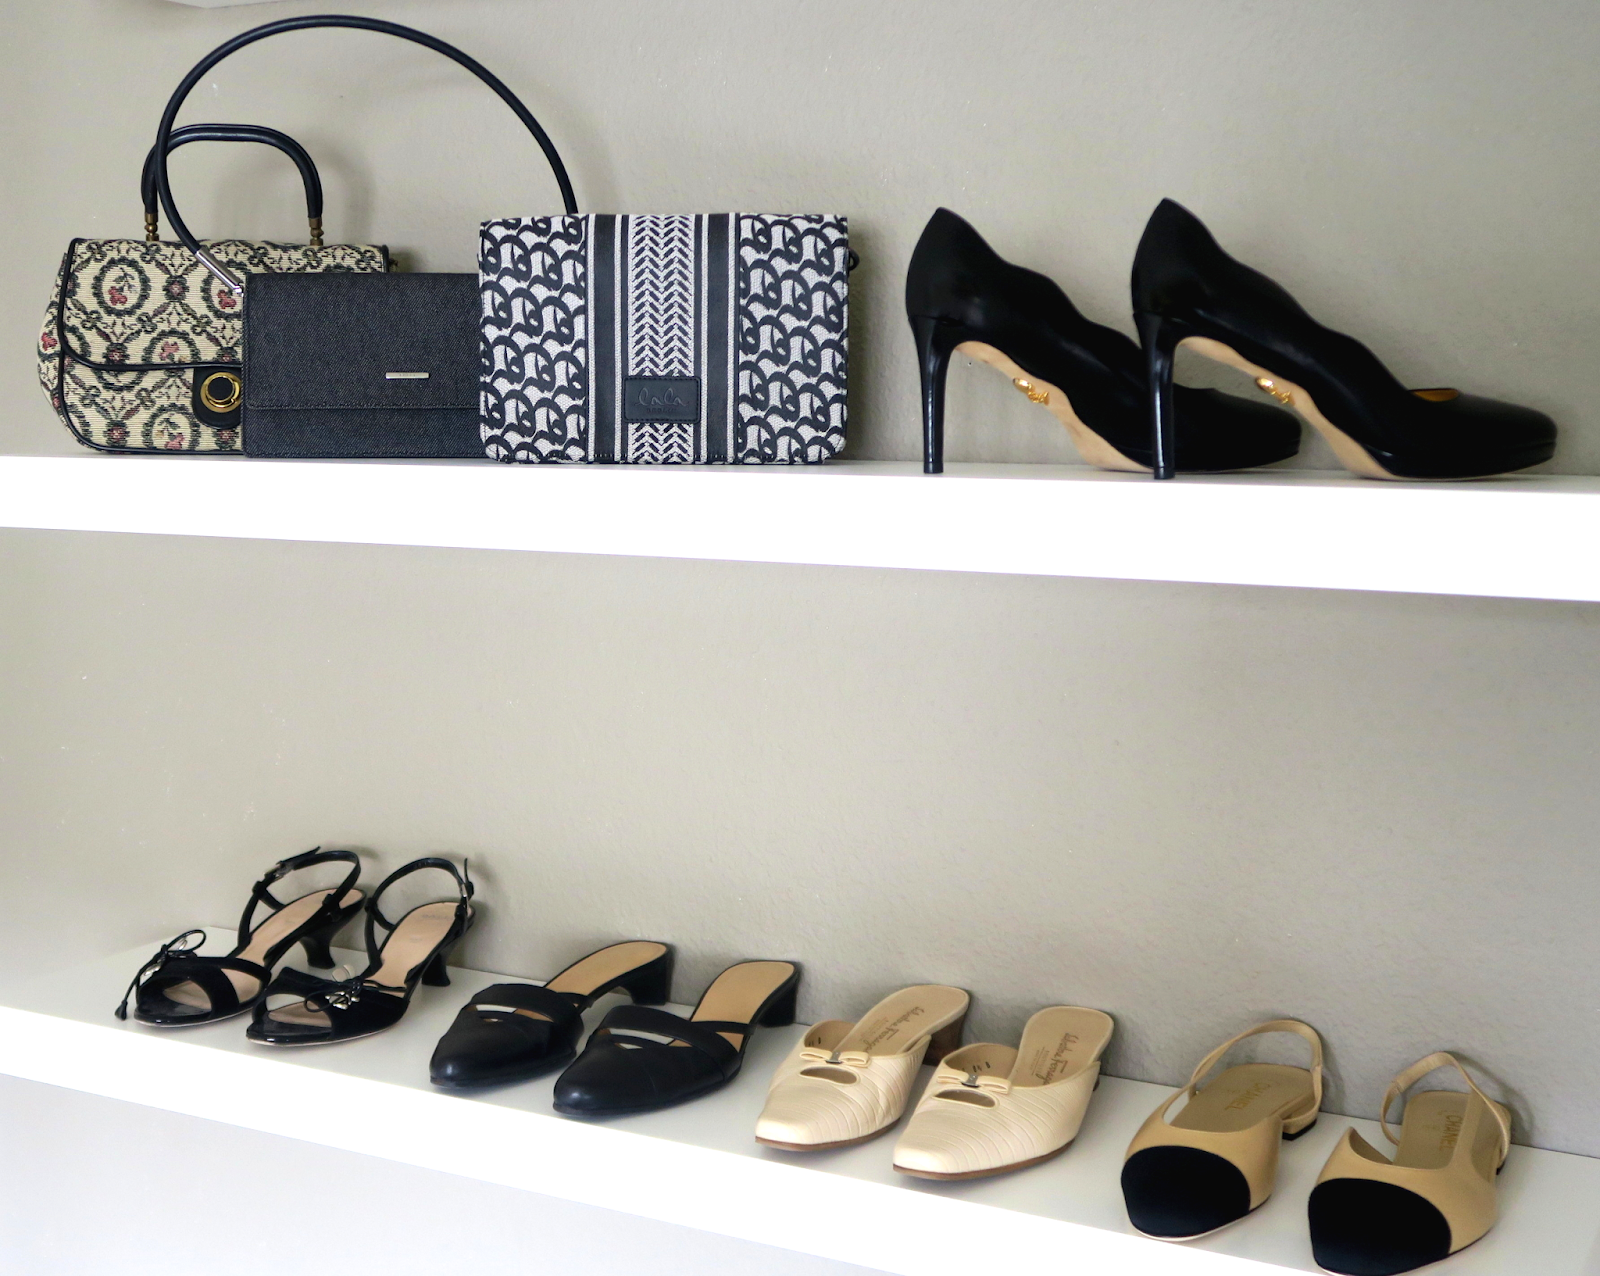 Shoe Parking An Elegant Way To Store Your Shoes Wandregal Ikea Ikea Lack Wandregal Wandregal Lack